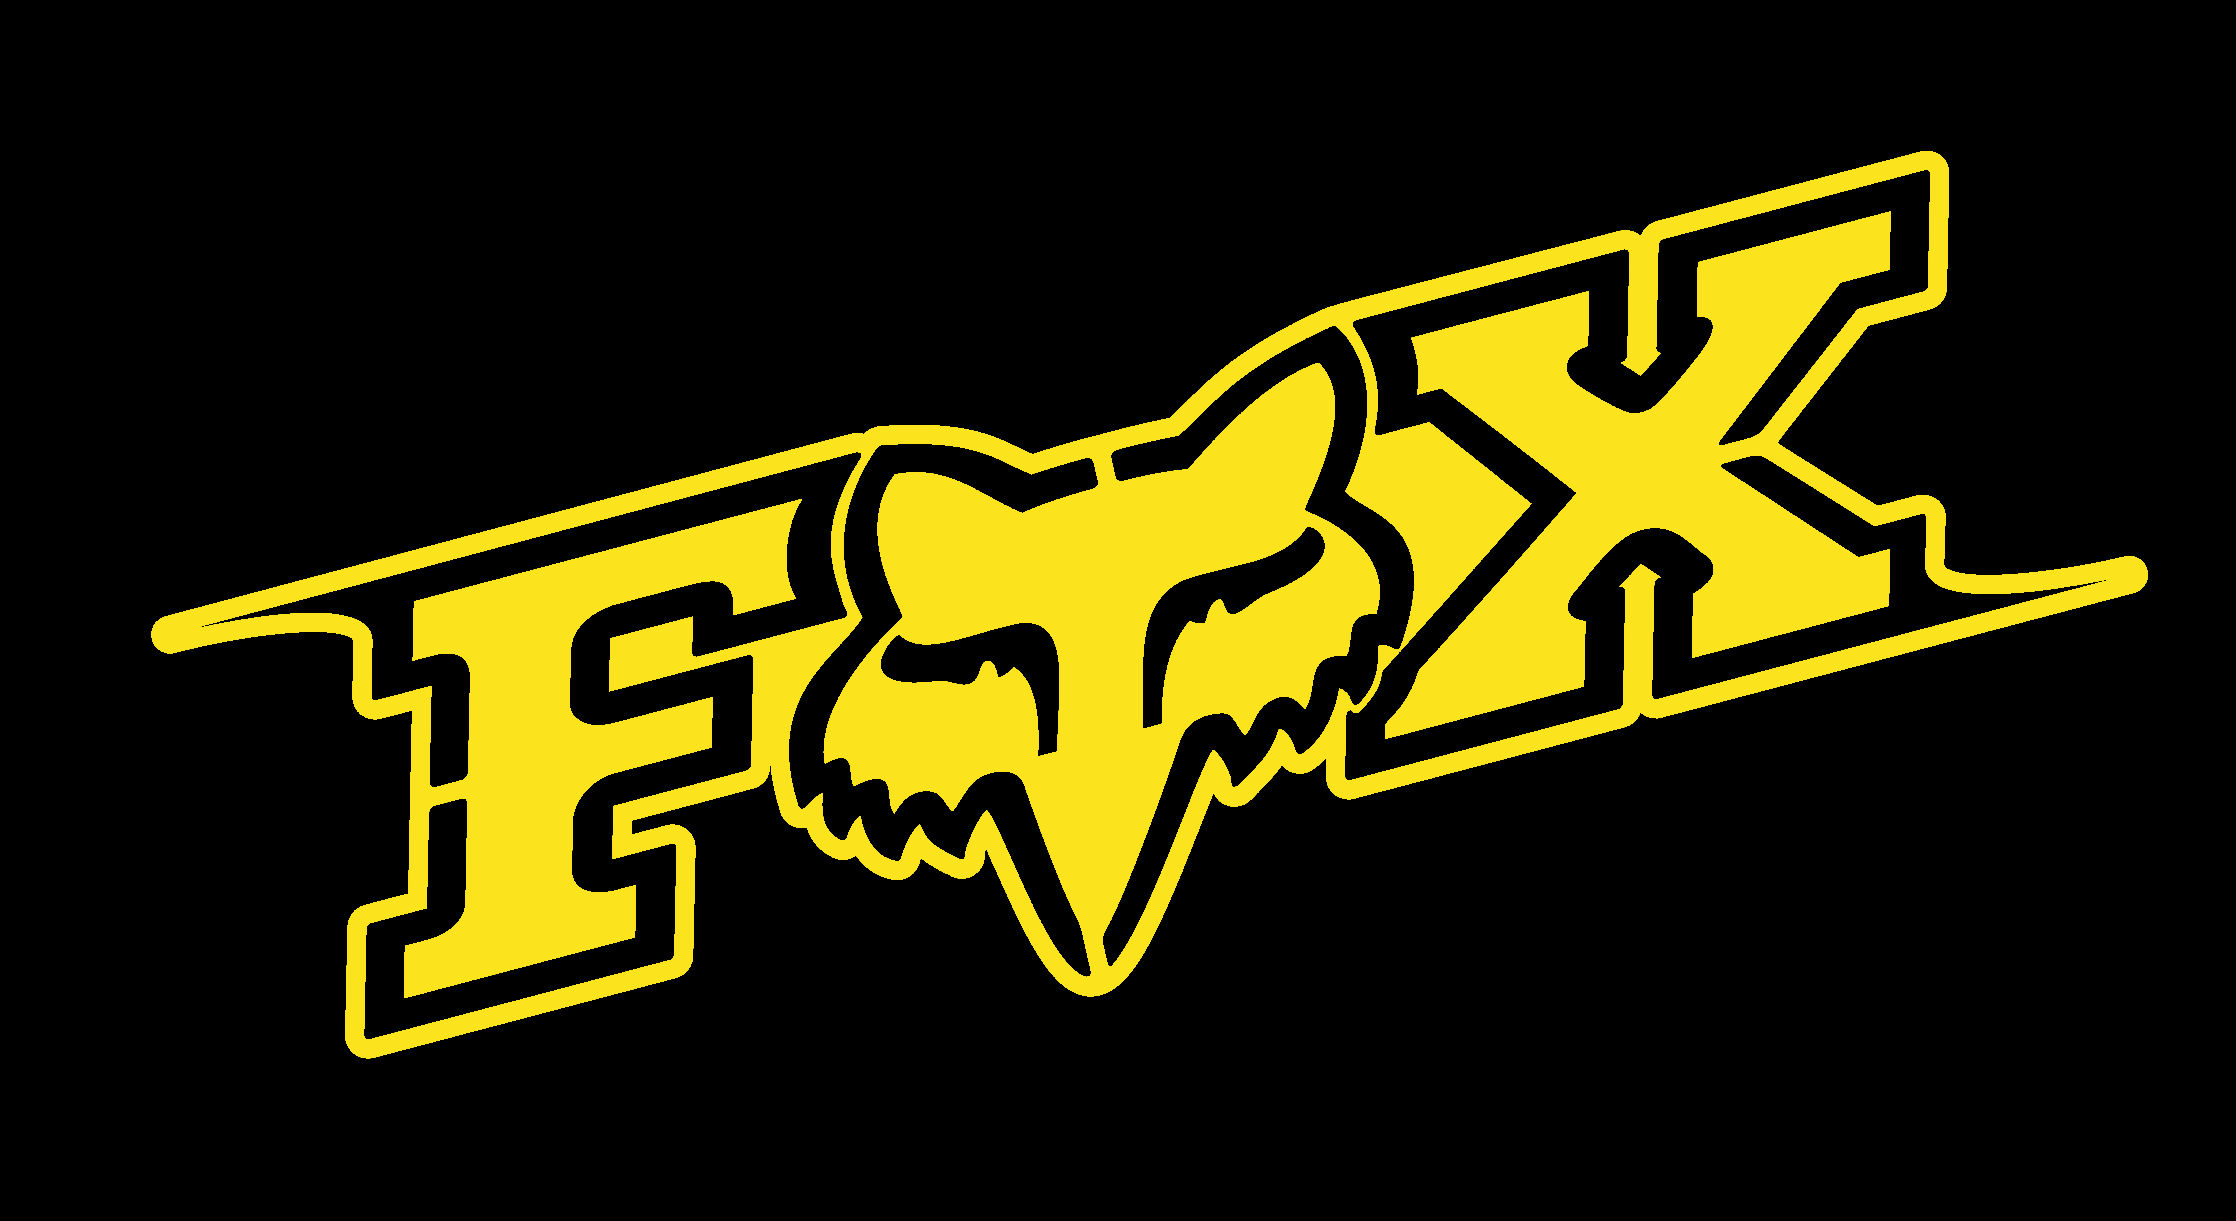 Best Logos Wallpaper Fox Racing 806838 Logos 2236x1221